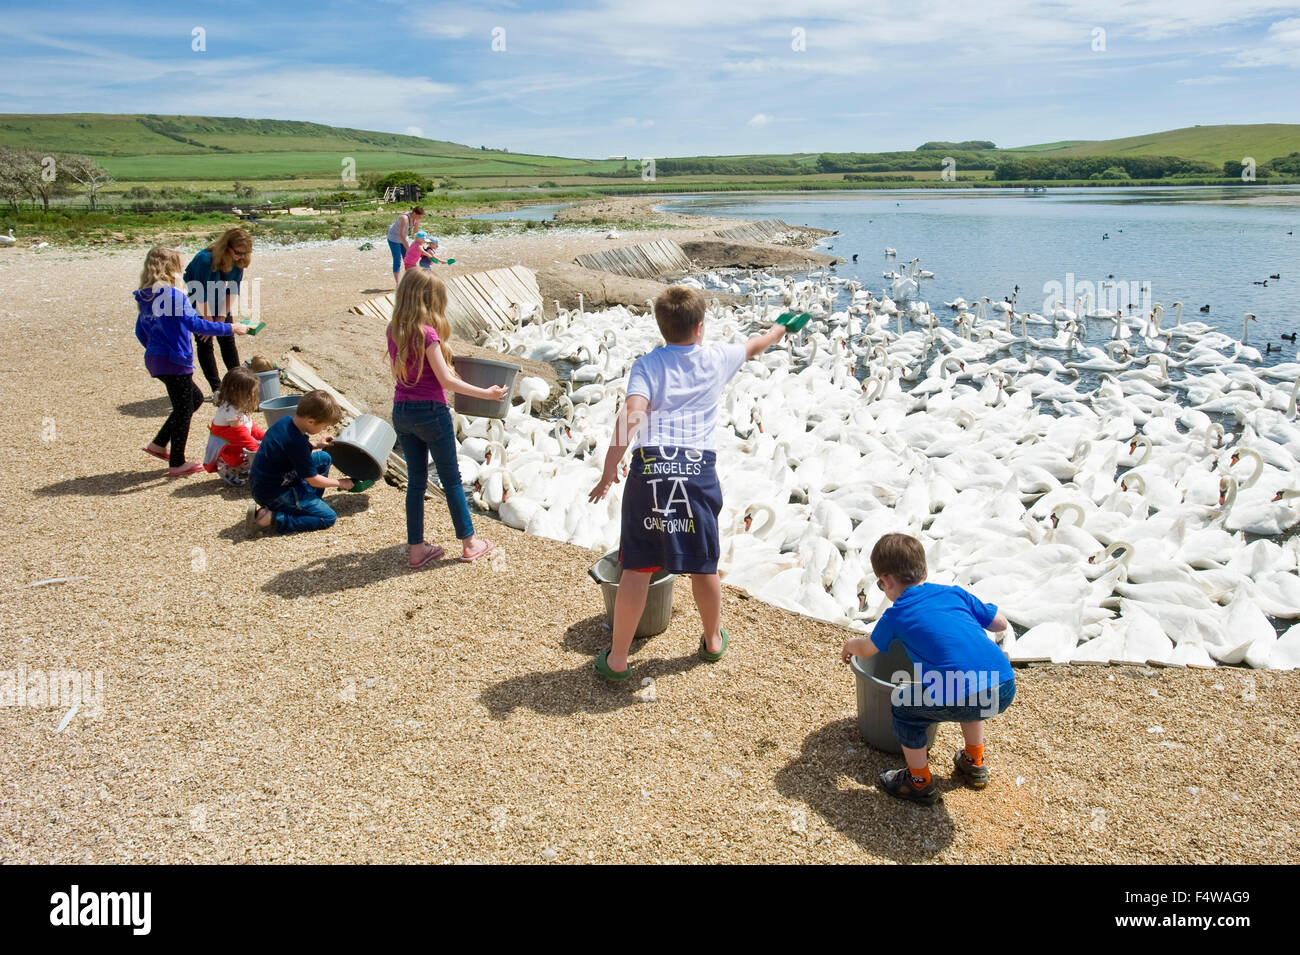 Feeding time at the Abbotsbury swan sanctury with children invited to feed corn to the birds. - Stock Image